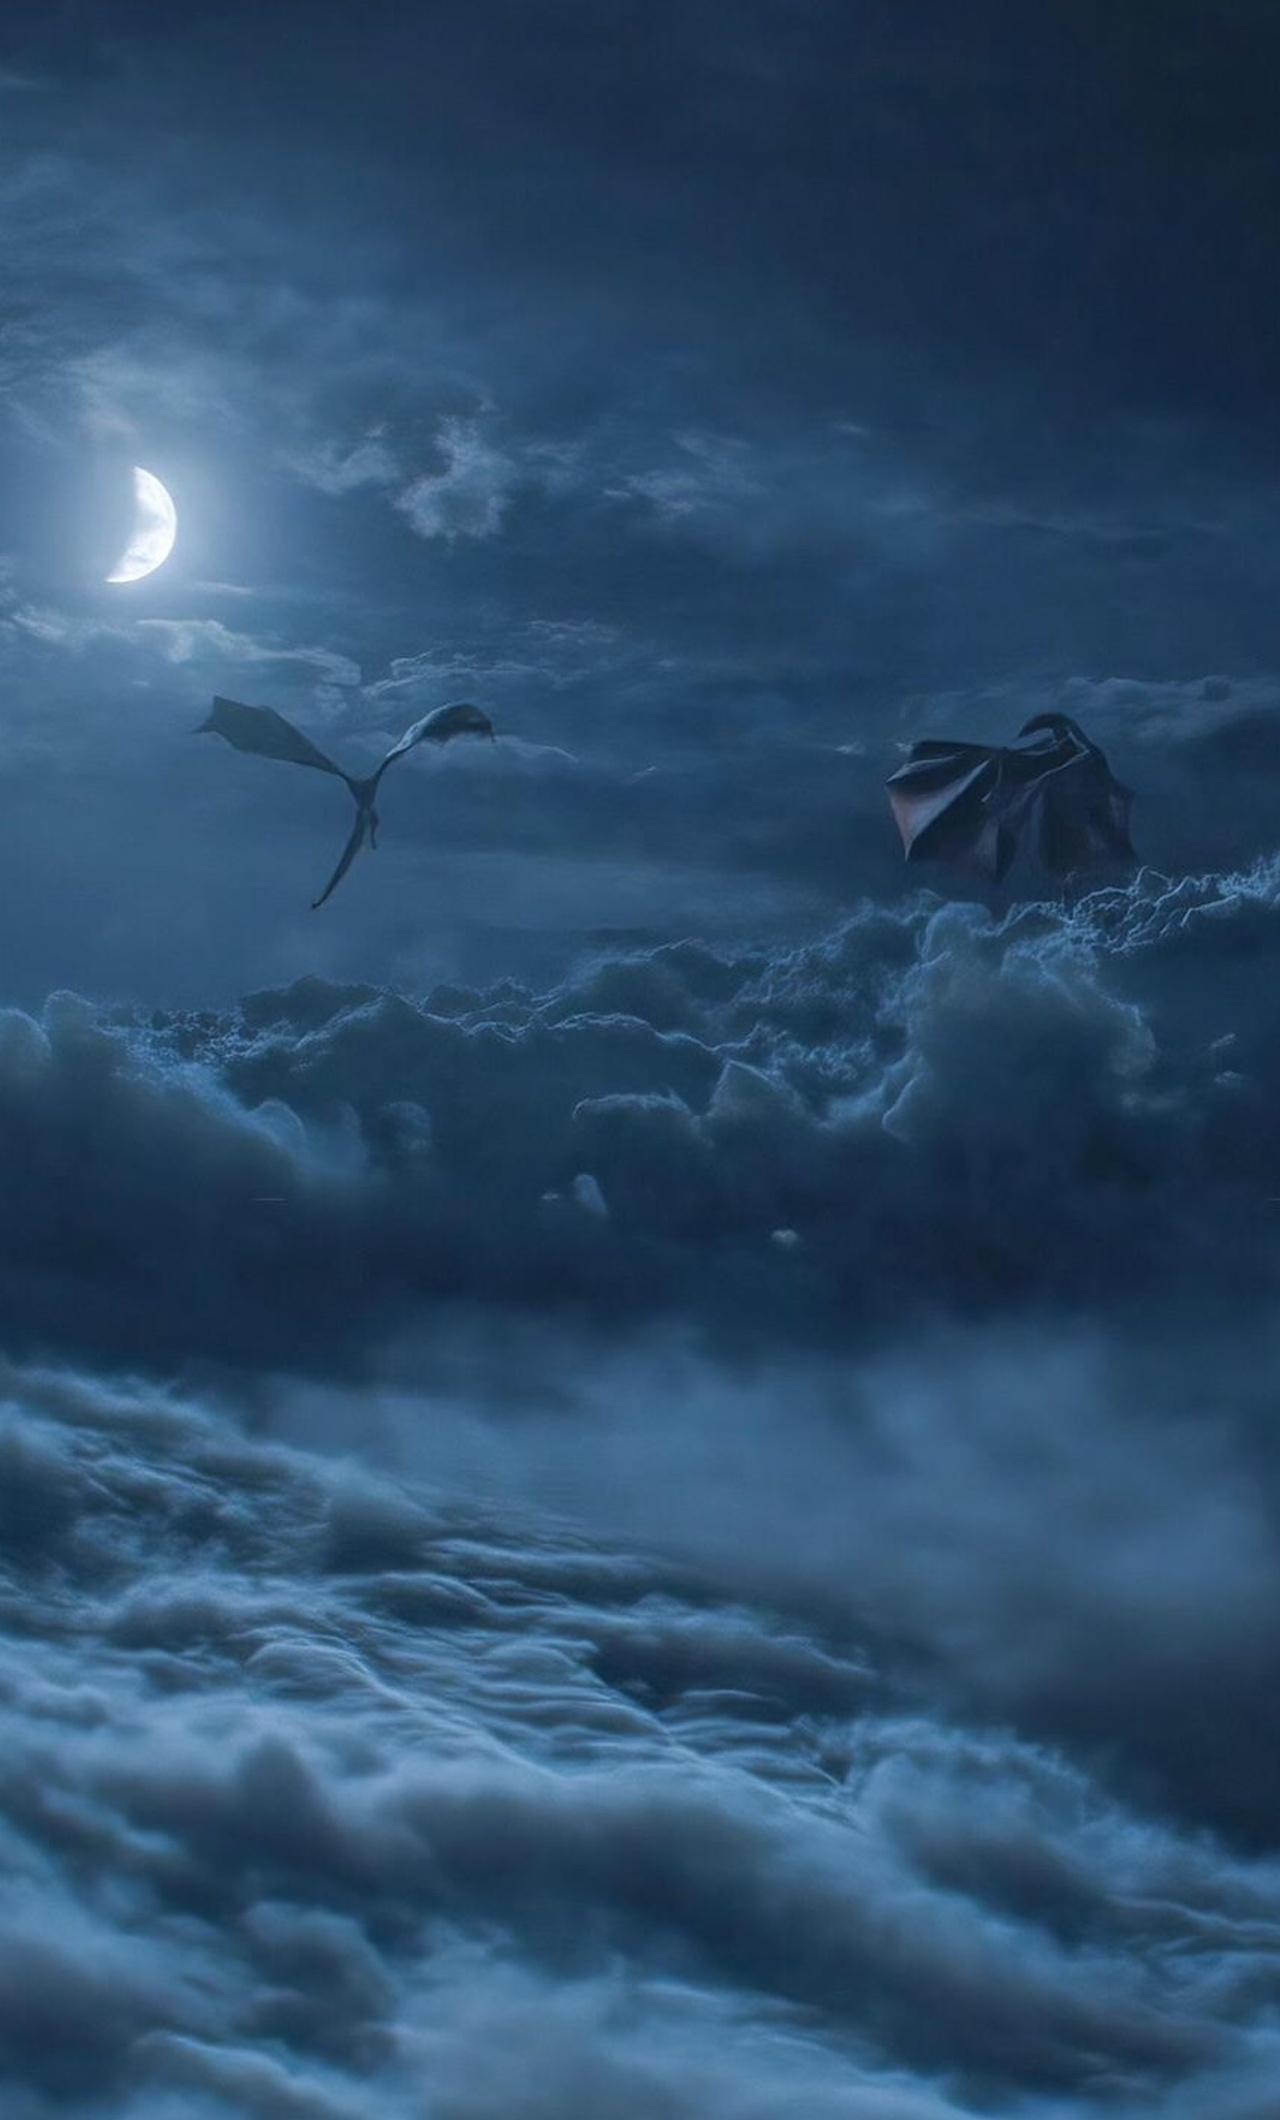 above-the-clouds-game-of-thrones-ly.jpg